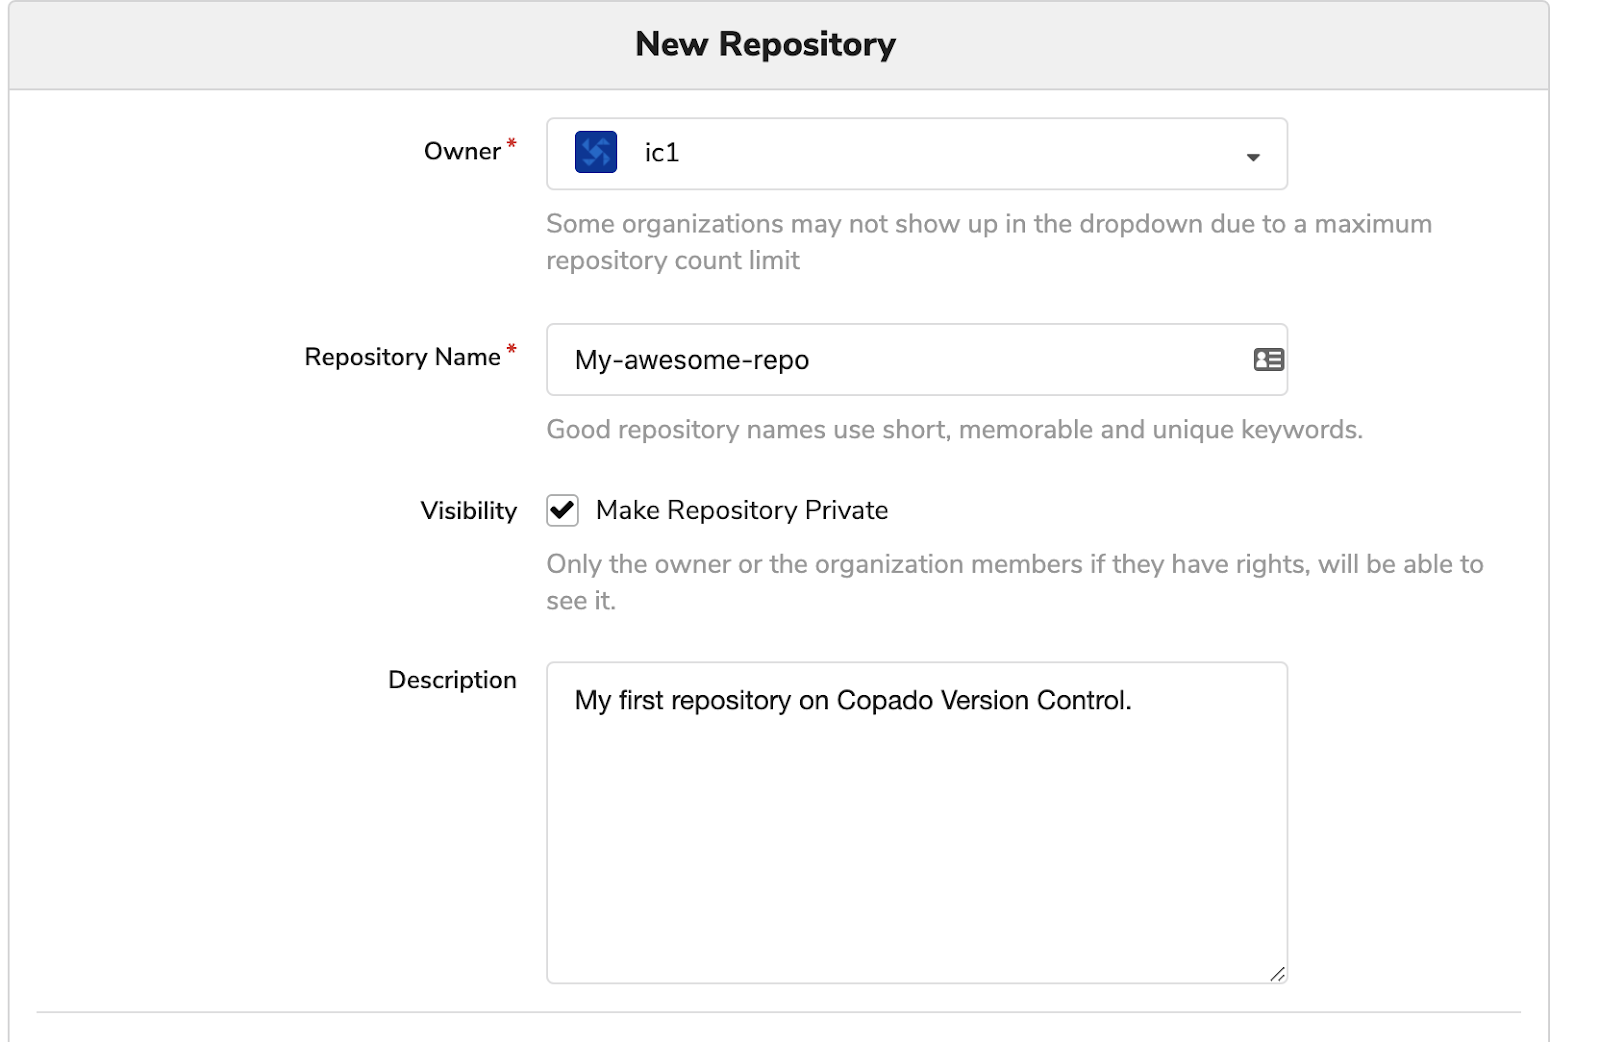 New Repository Information